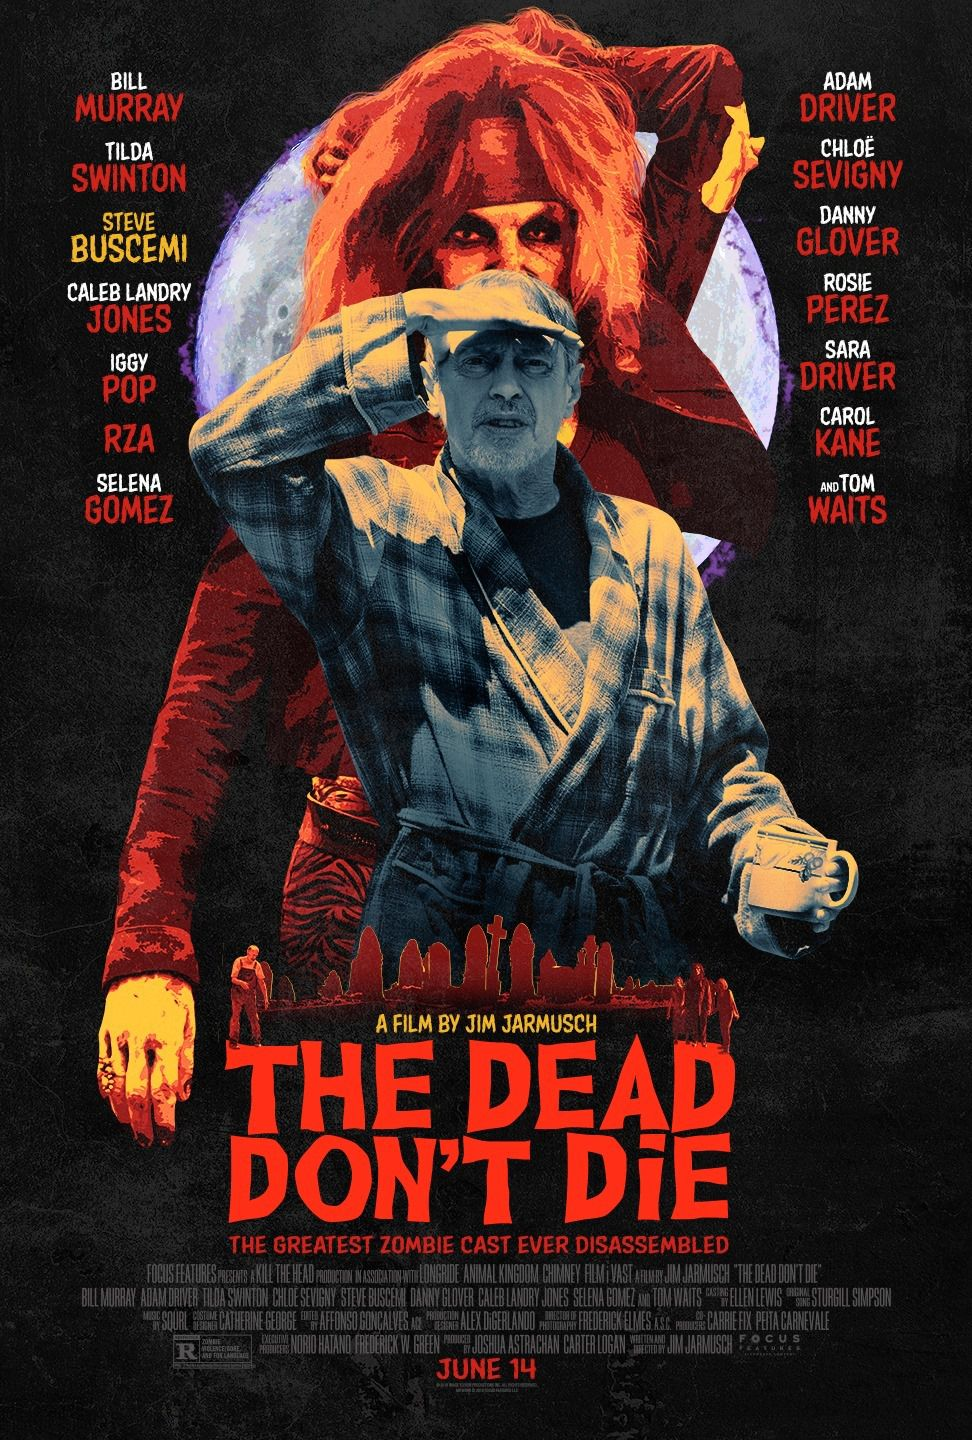 The Dead don't Die 2019 - Steve Buscemi